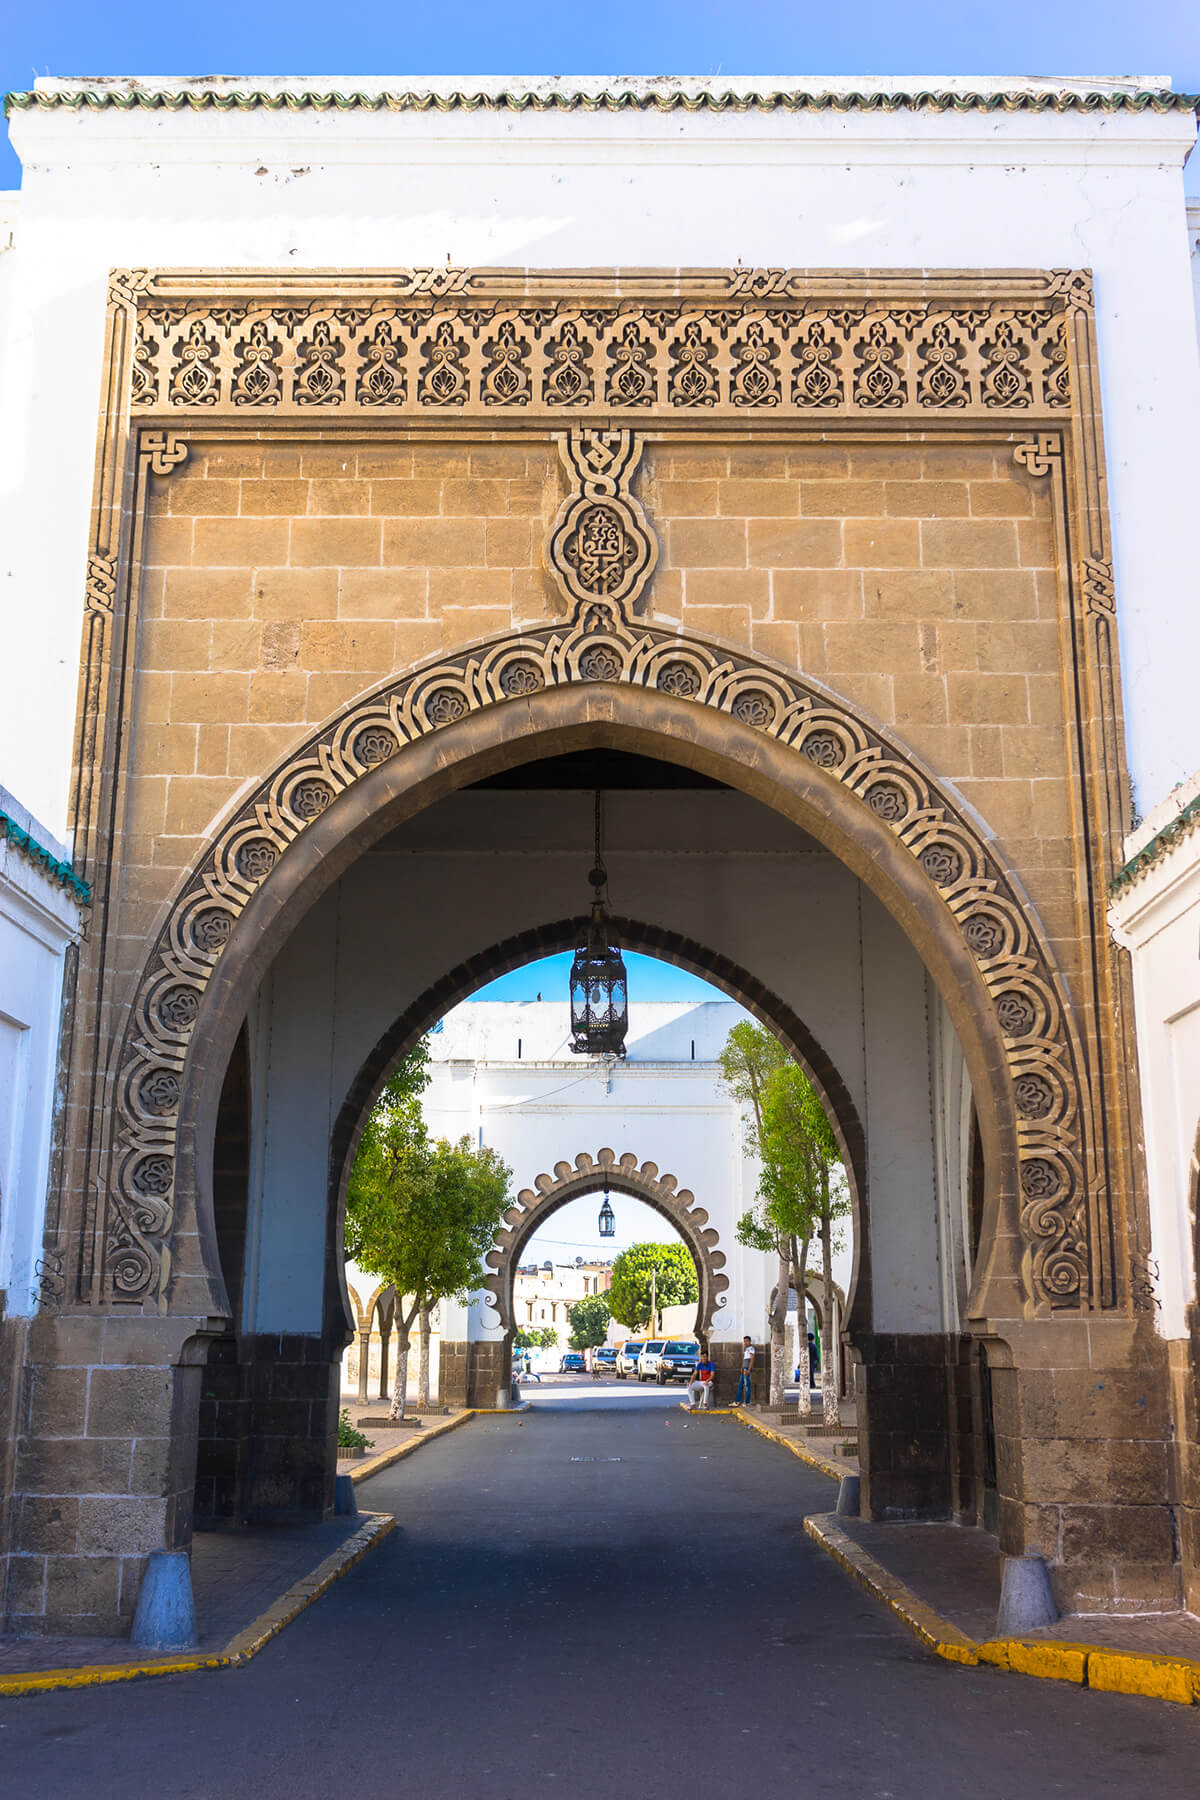 Sahara Desert Tour - Discover Casablanca - What to See and What to Do - Quartier Habous